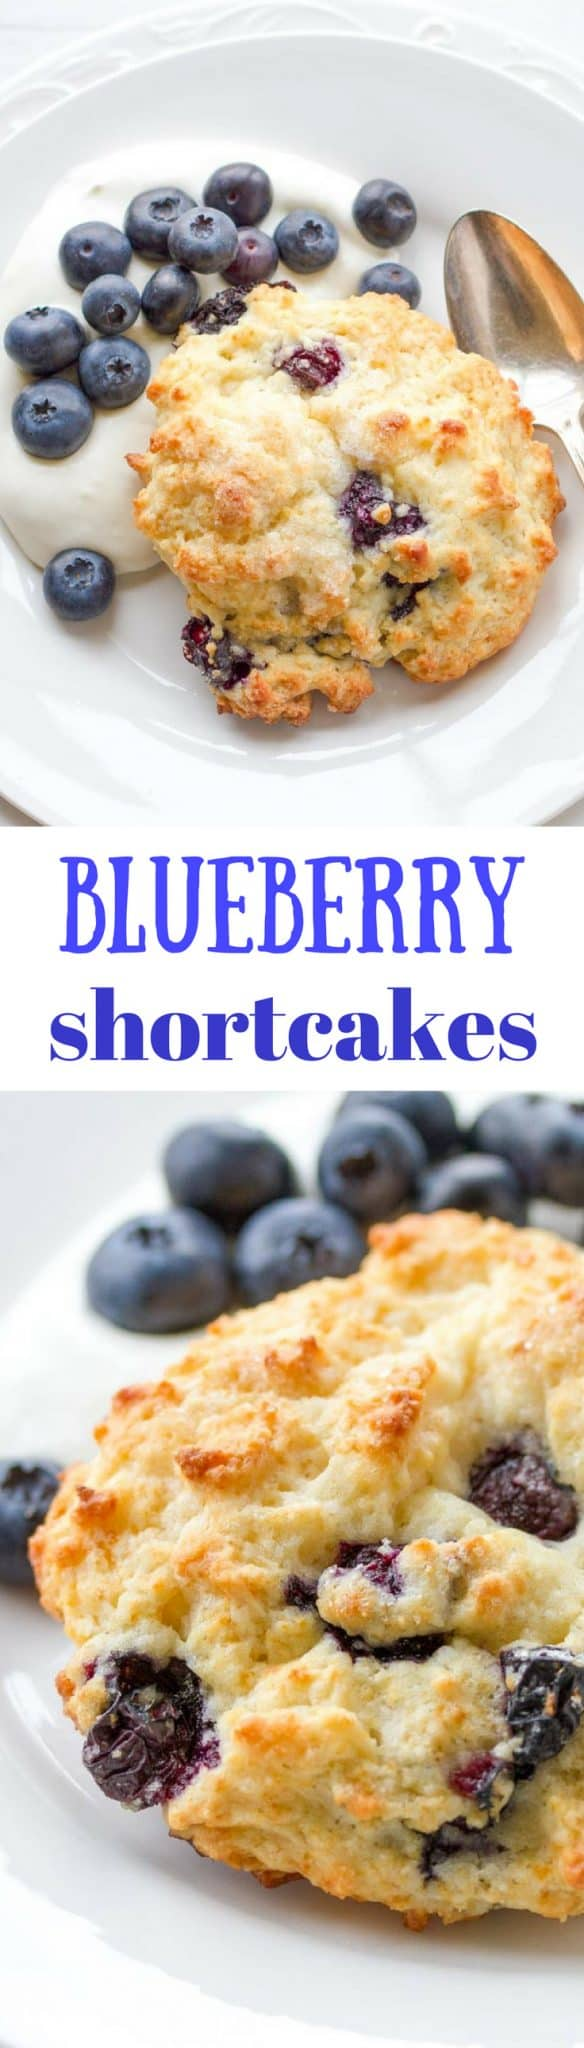 Blueberry Shortcakes with Whipped Cream Cheese ~ A lightly sweet and ...